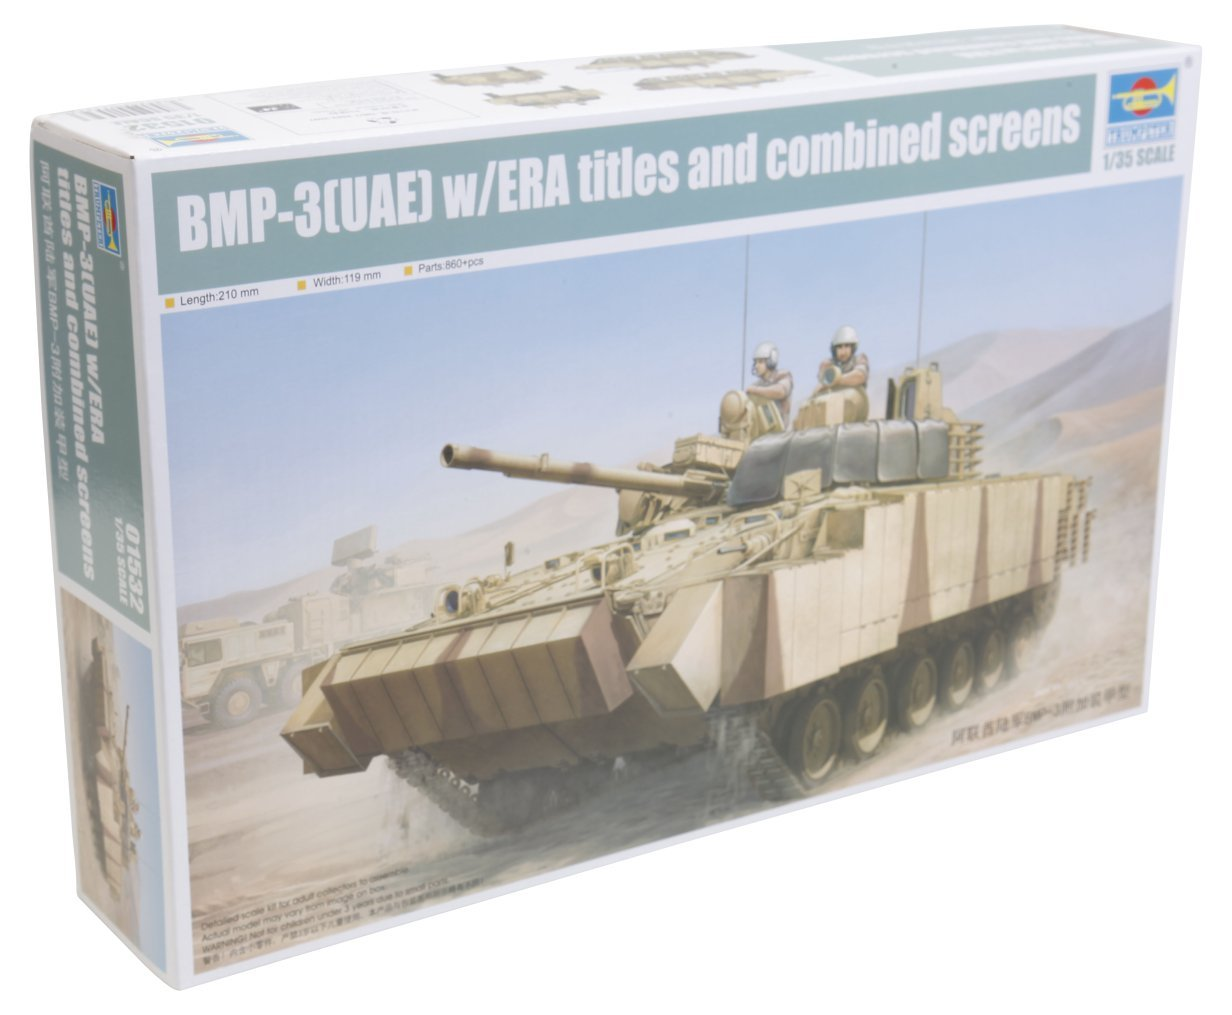 Trumpeter BMP-3 (UAE) with ERA Titles and Combined Screens Model Kit (1:35 Scale)